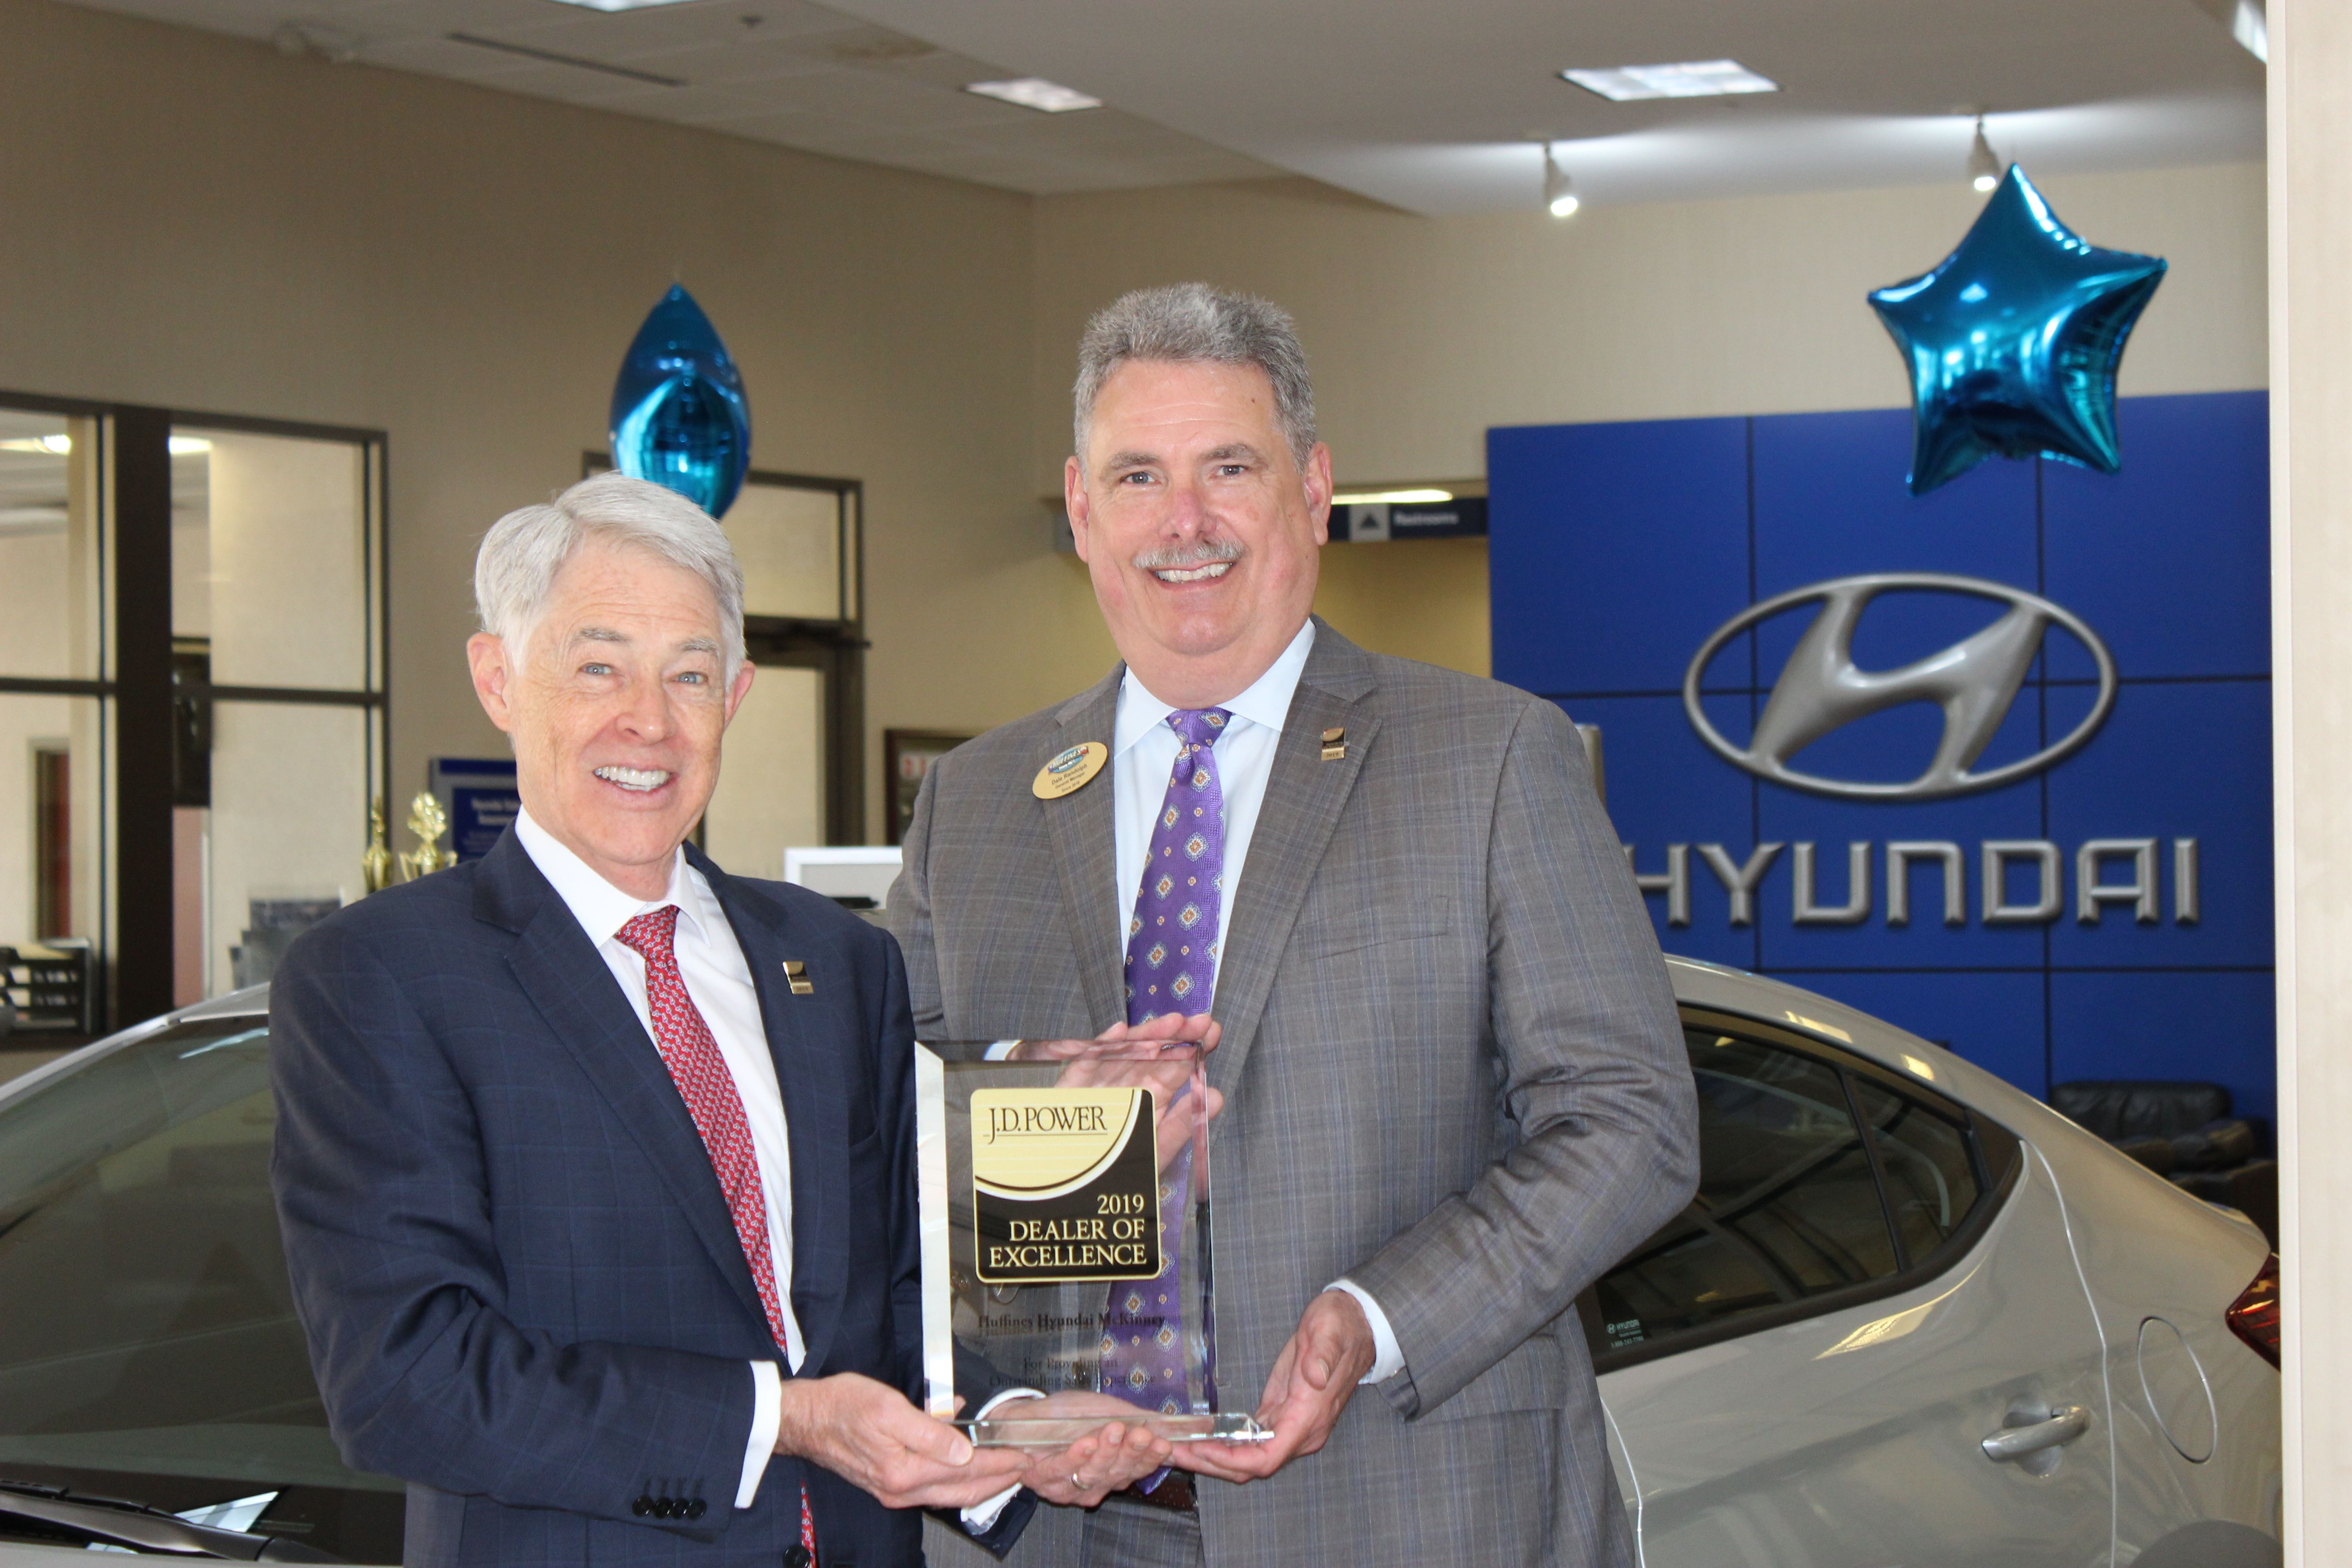 At Huffines Hyundai Mckinney We Are Committed To Providing Our Valued Customers With The Best Service And Are Proud To Ha Hyundai Dallas Morning News Consumers